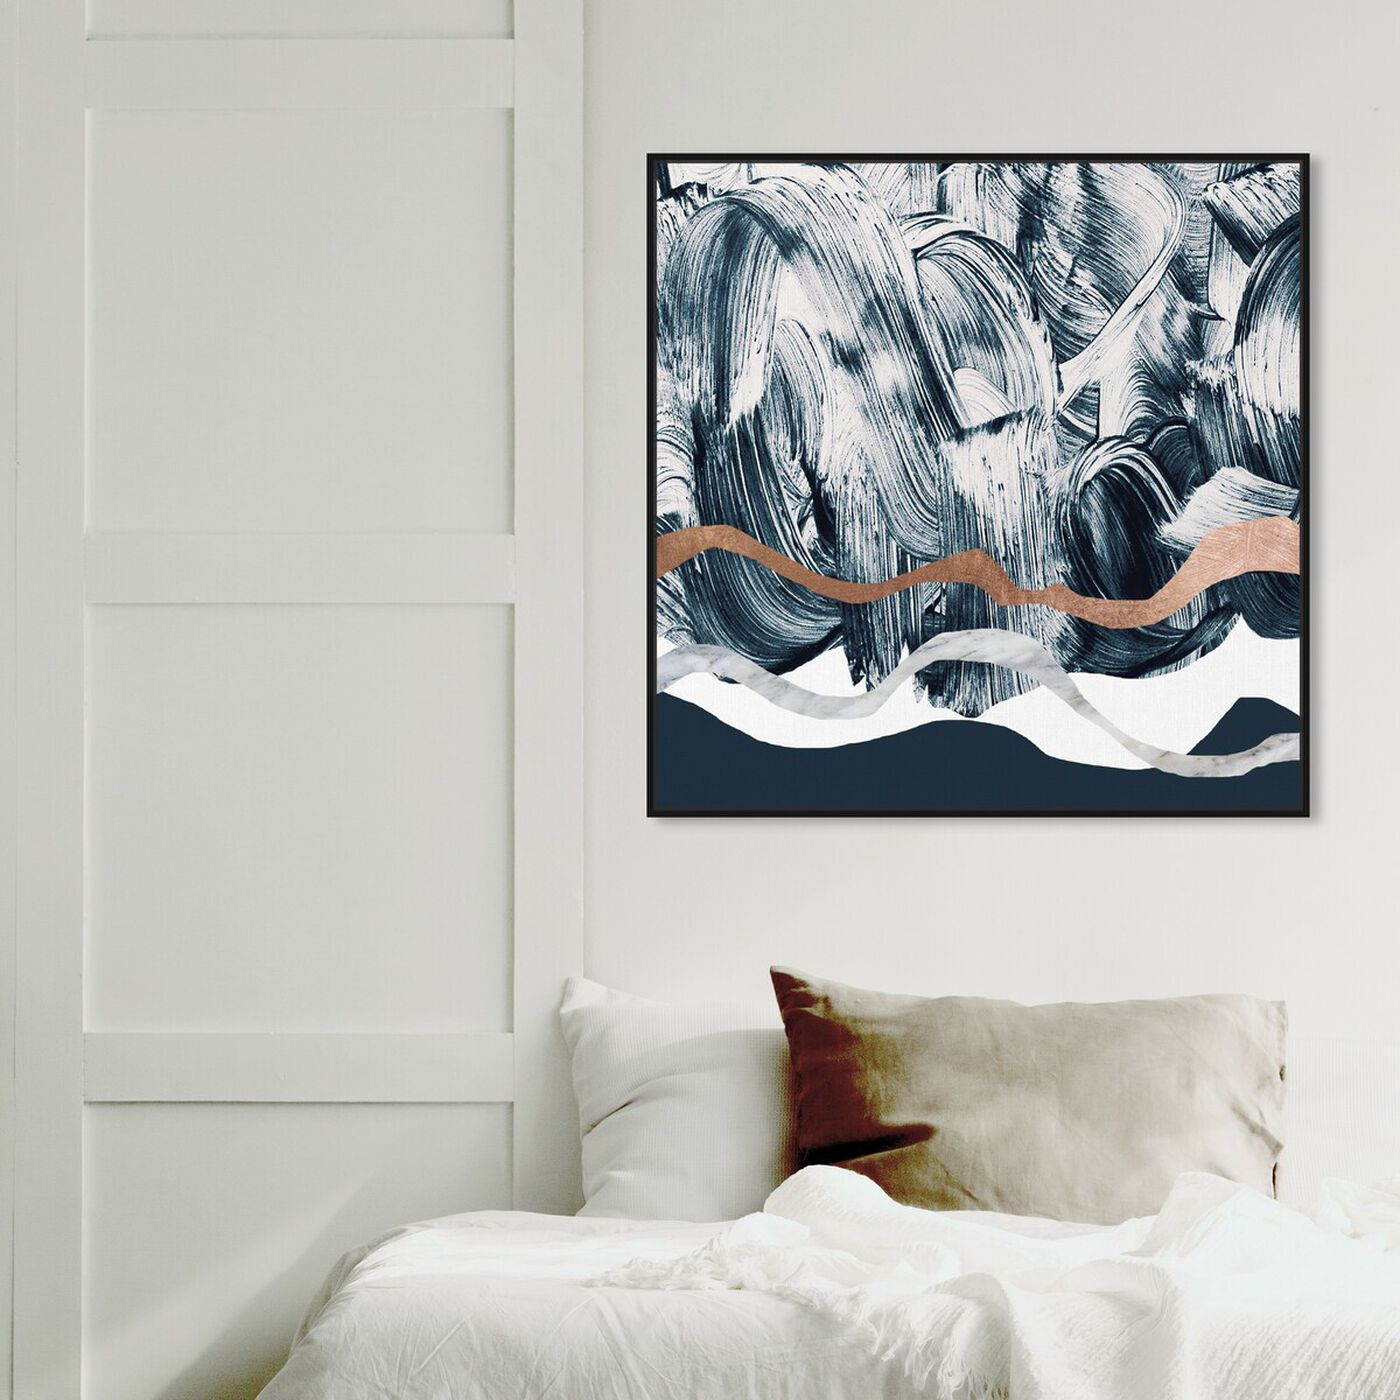 Hanging view of Bath in Copper Mountain featuring abstract and paint art.